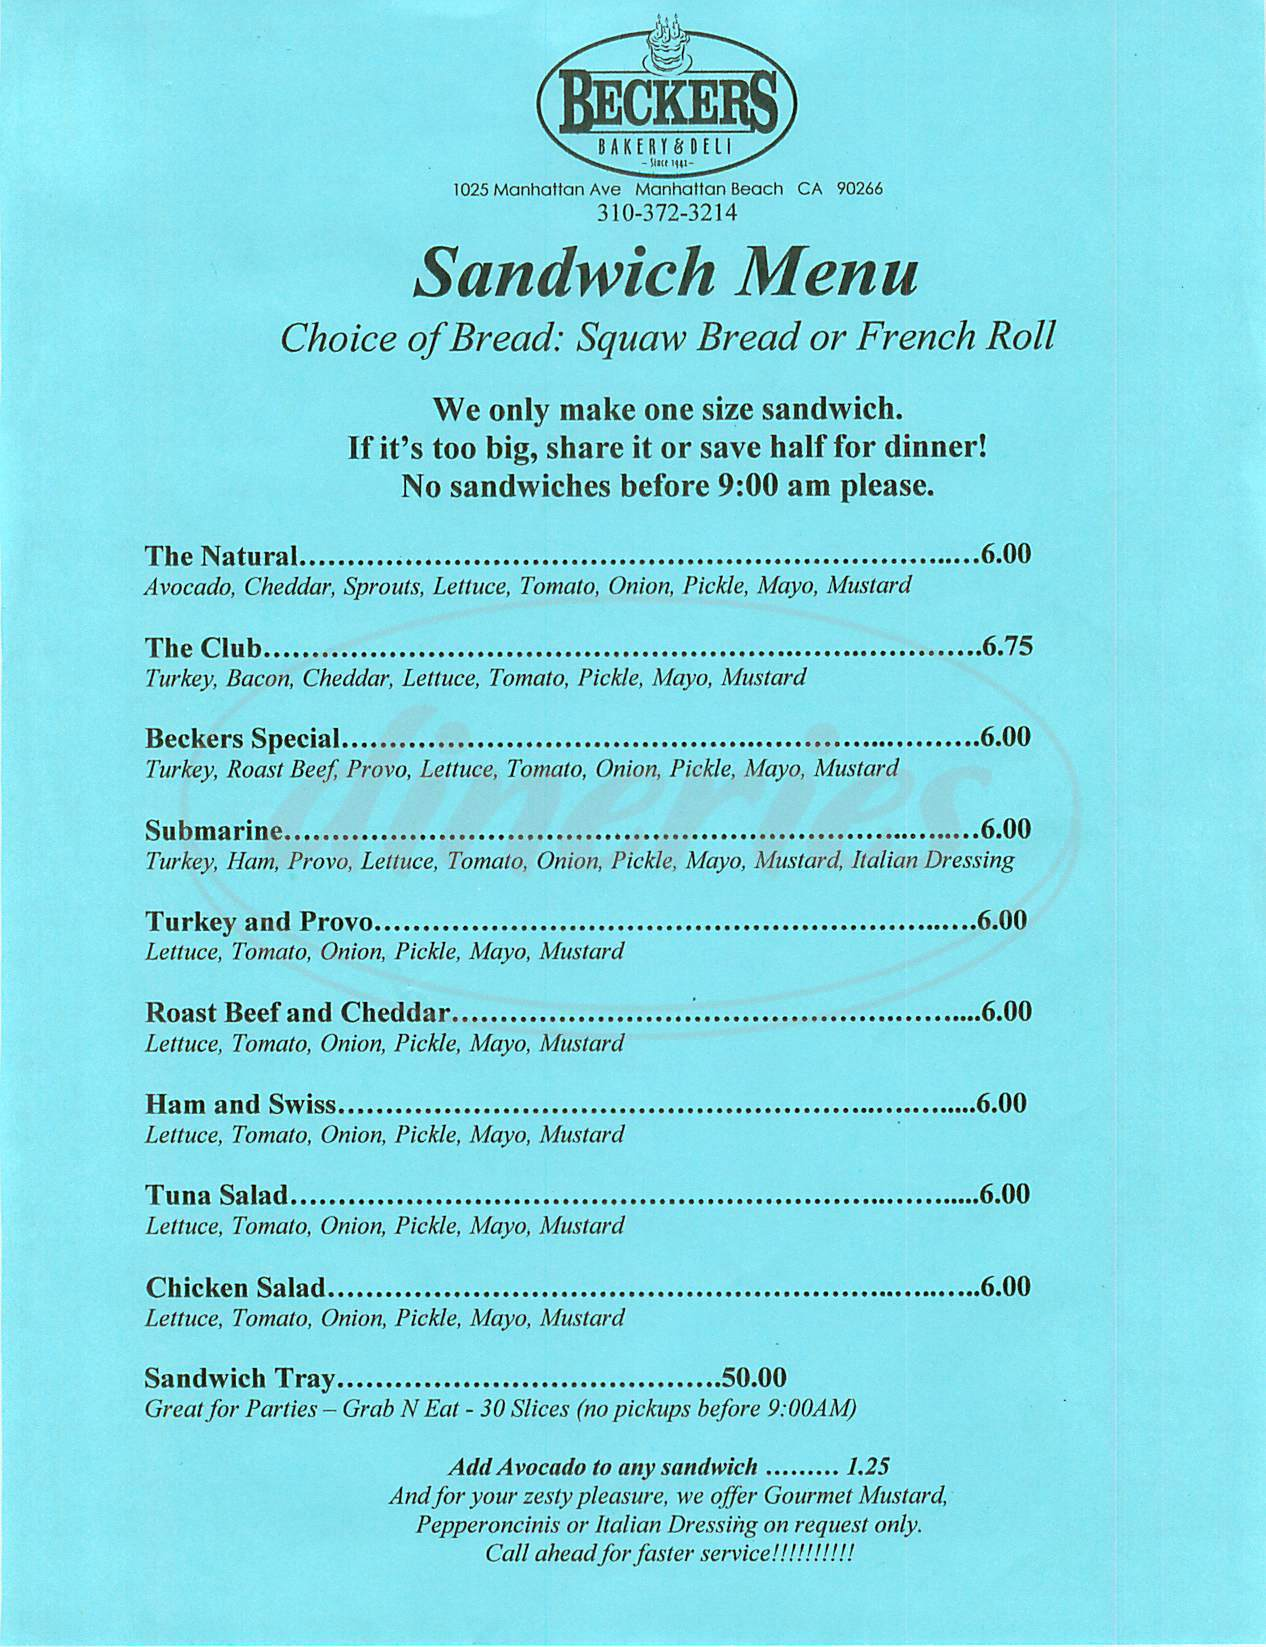 menu for Beckers Bakery & Deli